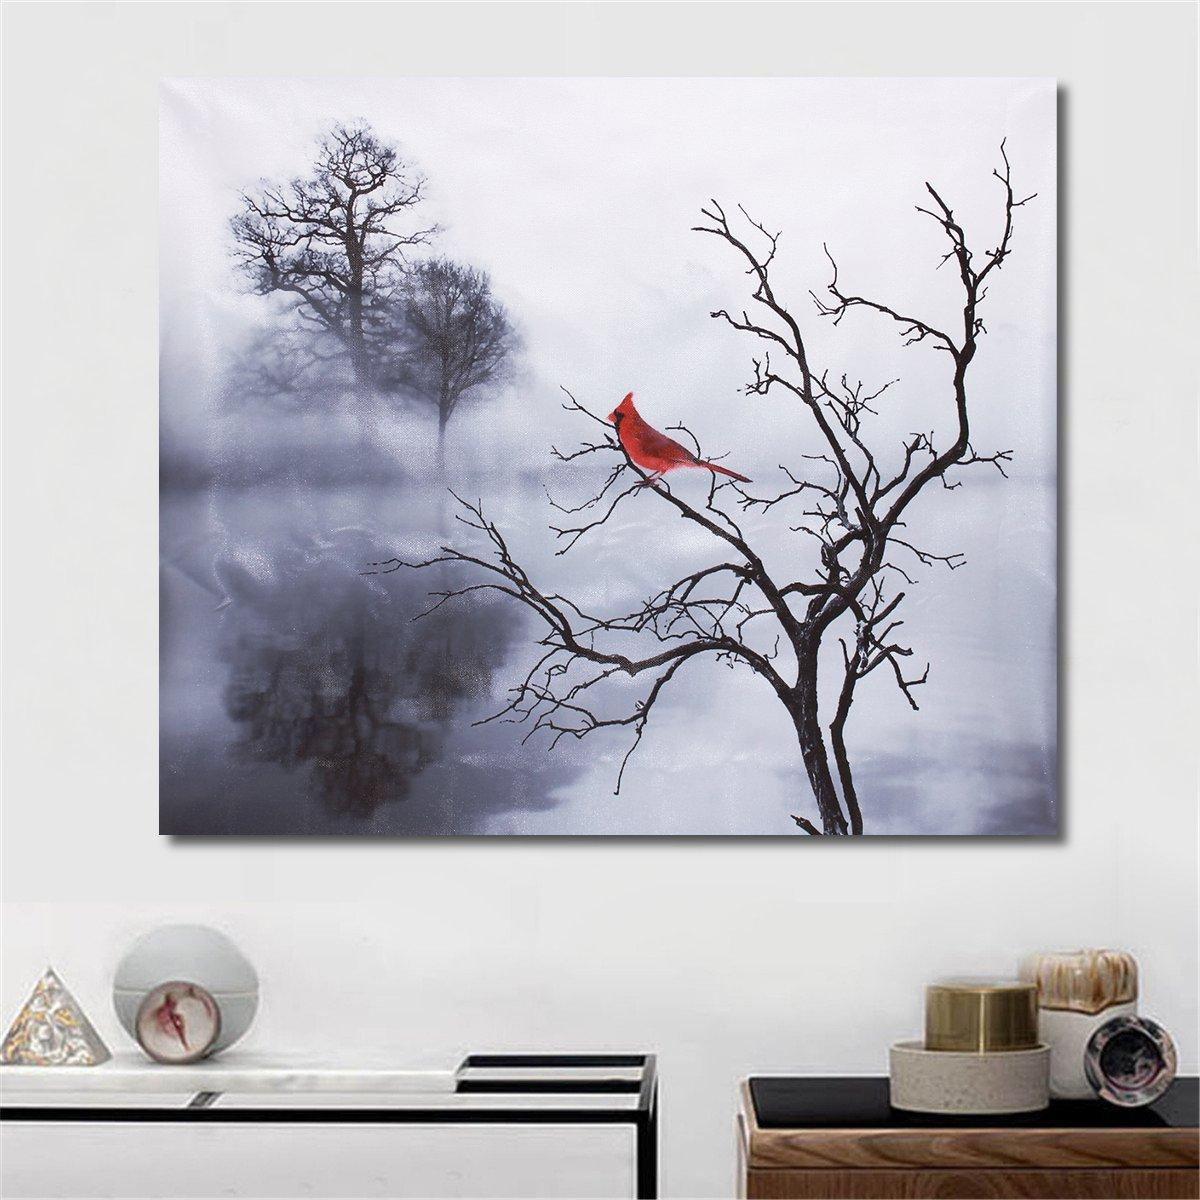 Modern red bird tree canvas oil printed paintings home wall art decor unframed decorations cod